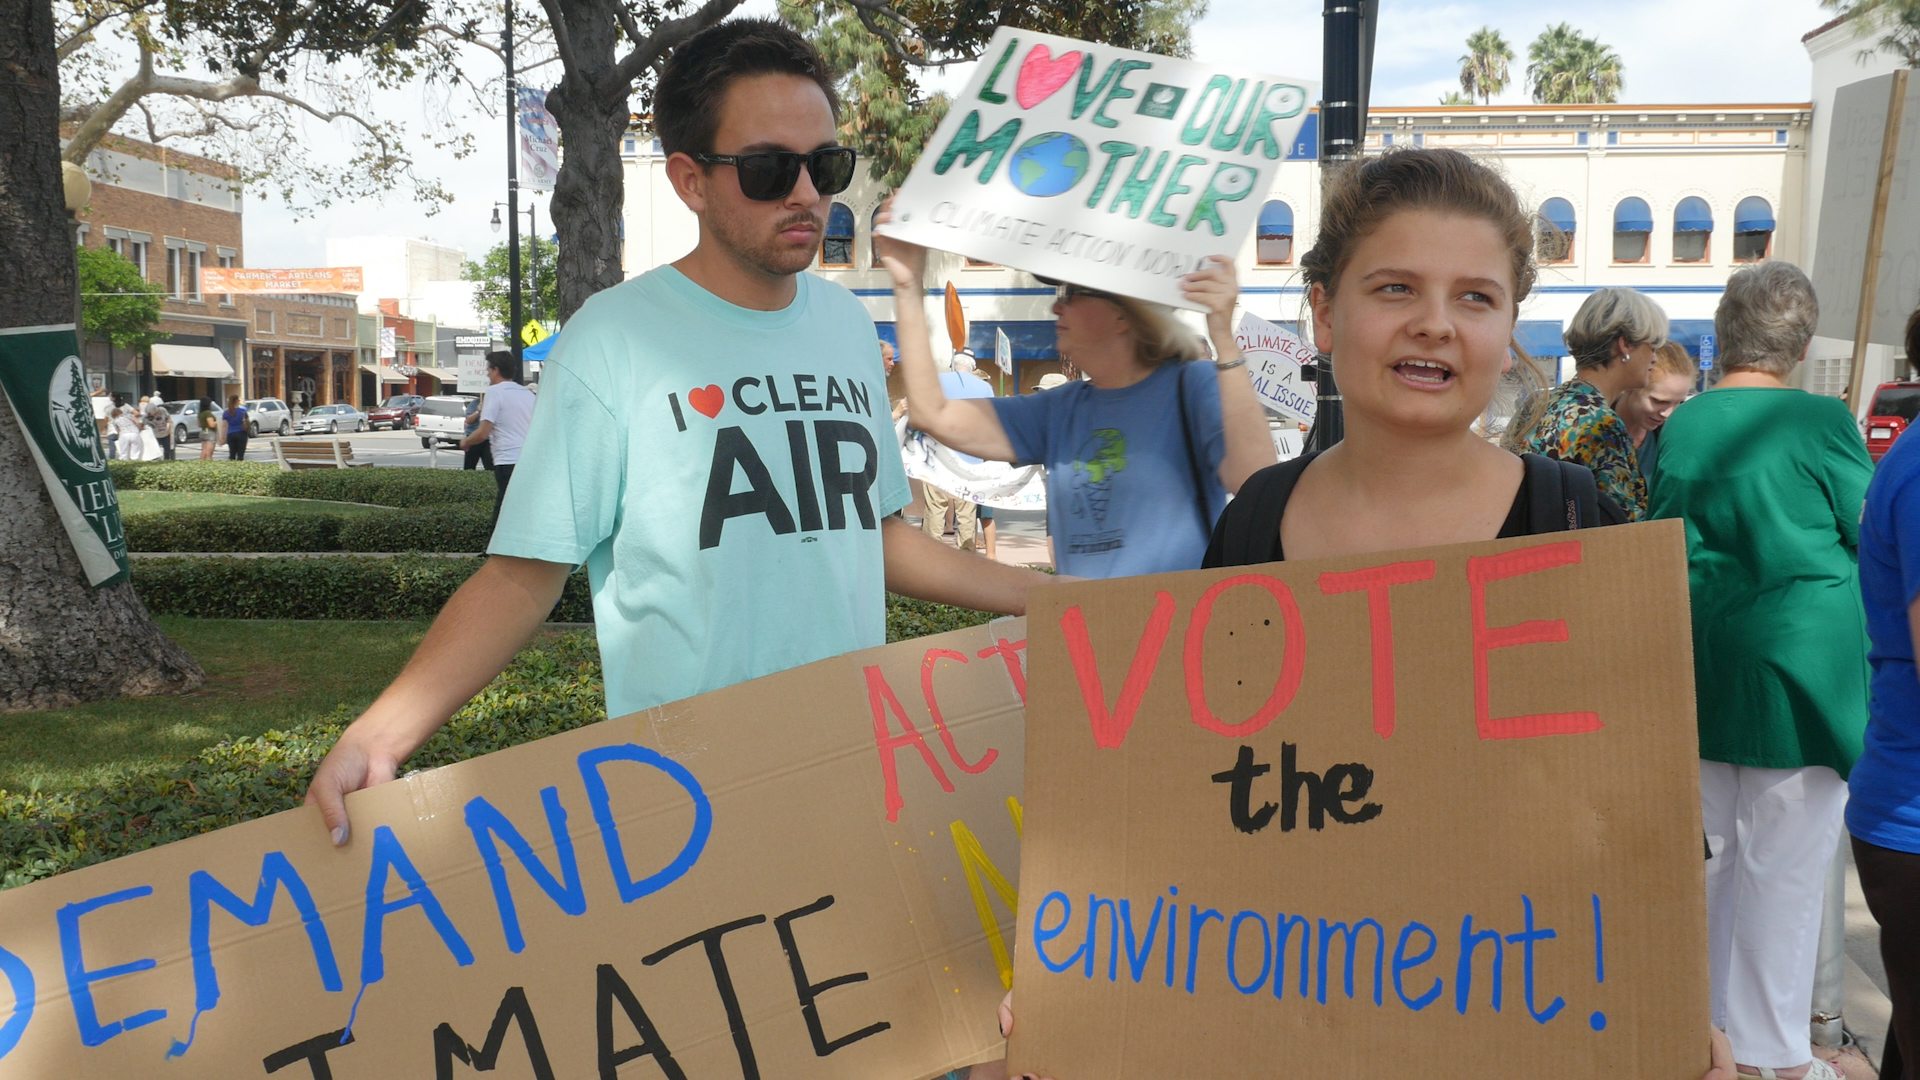 Participants in climate change rally